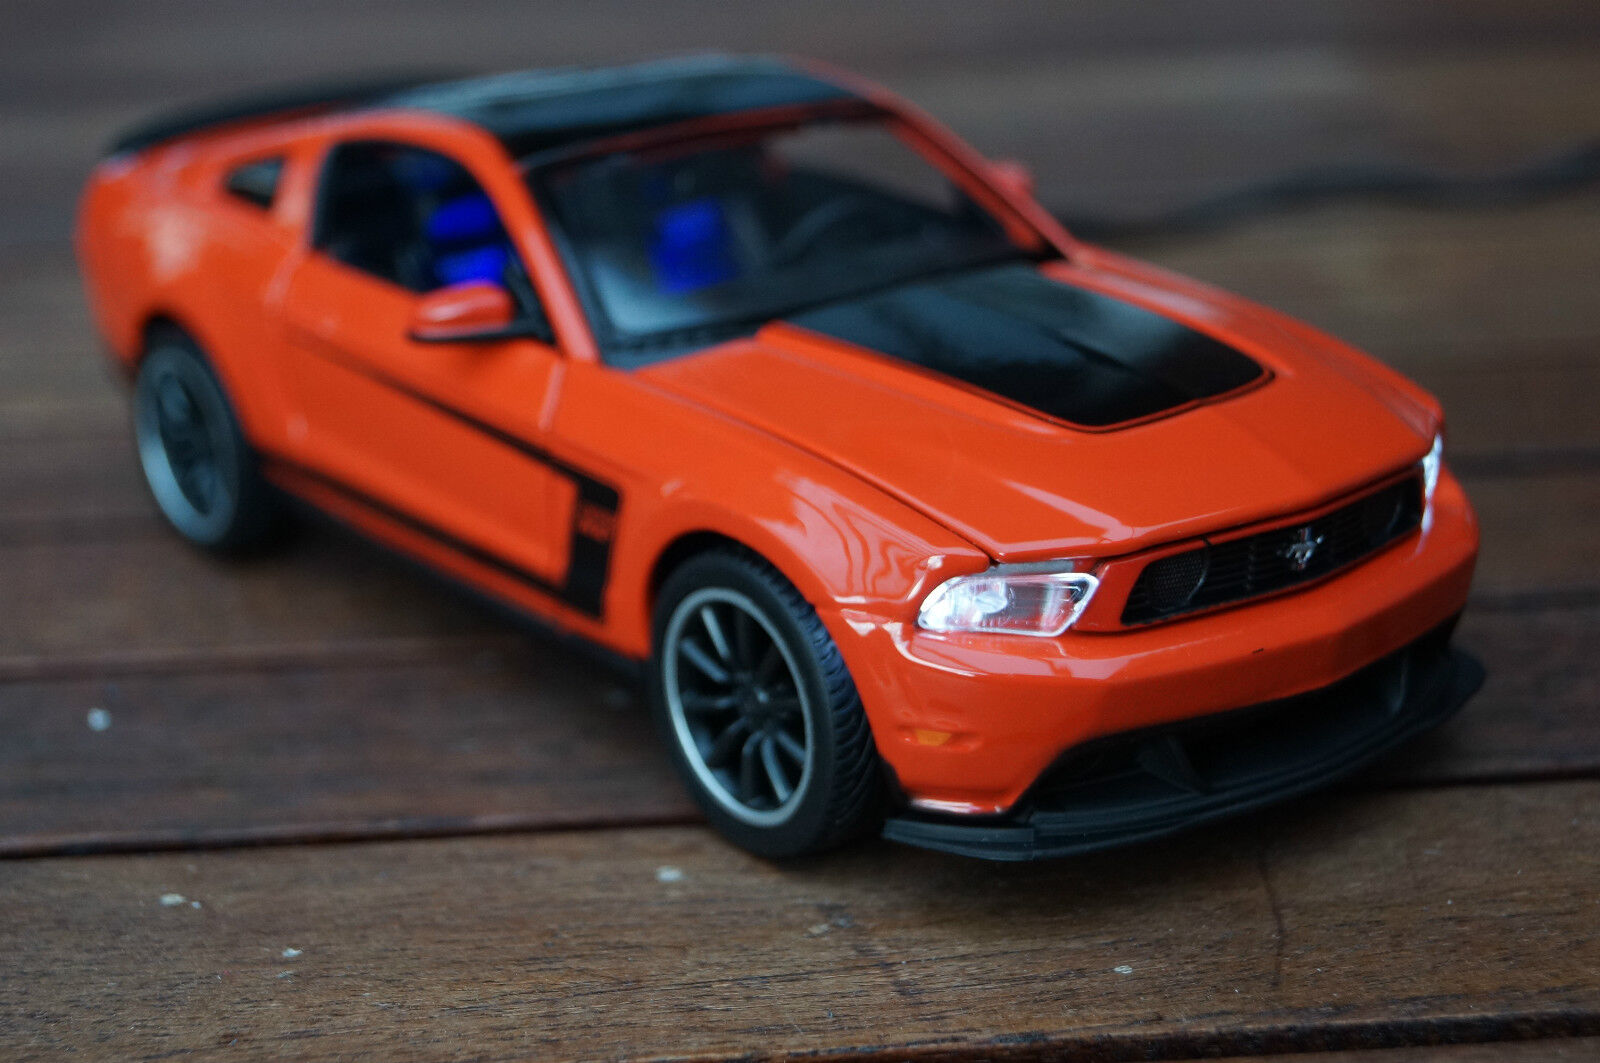 FORD MUSTANG BOSS 302 IN 1 1 1 24 MIT LED-BELEUCHTUNG(XENON) MAISTO orange fa9314